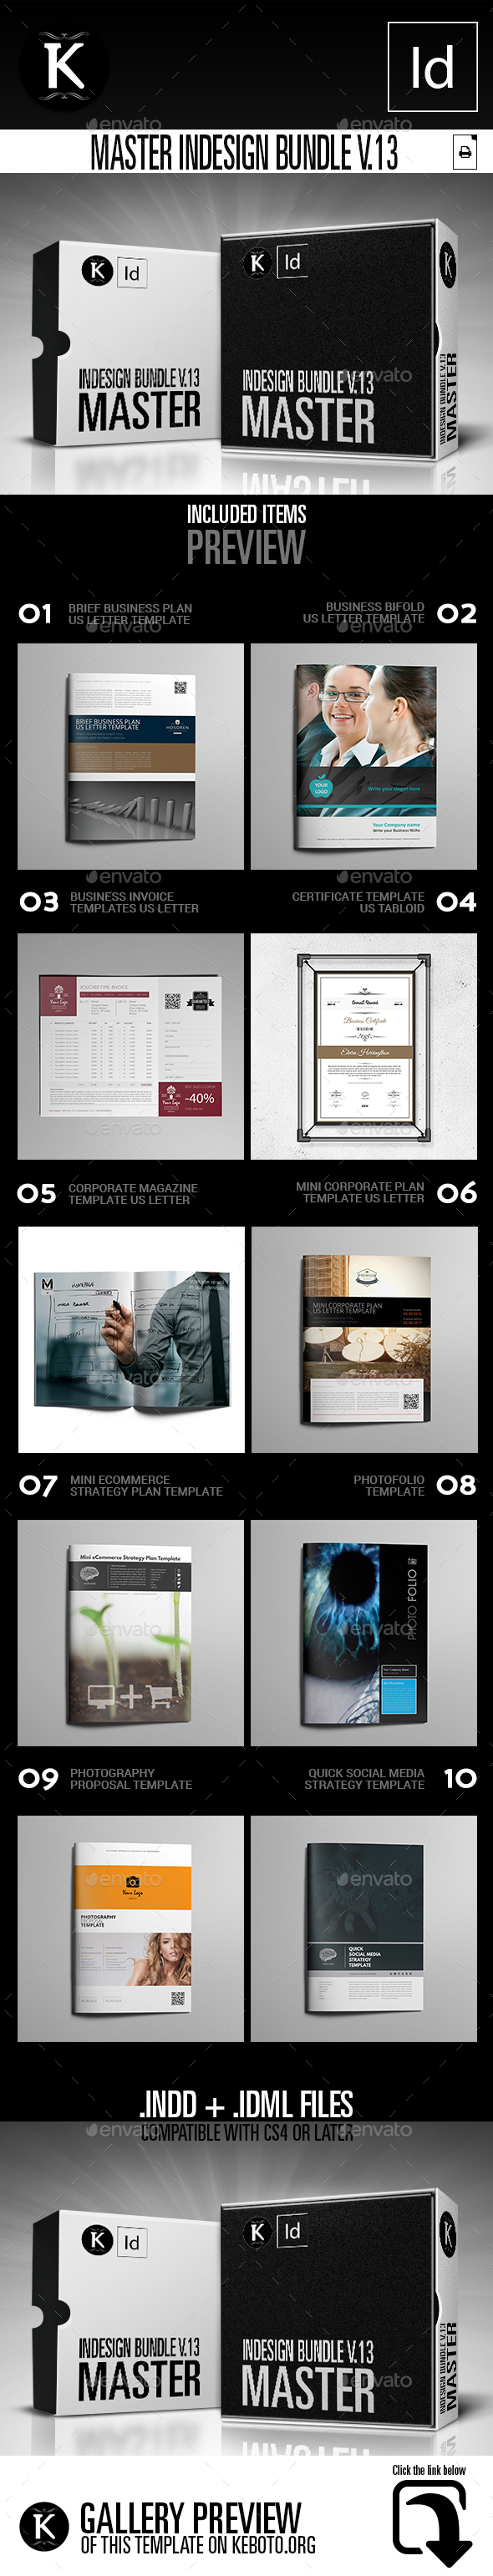 Master inDesign Bundle v.13 - Print Templates